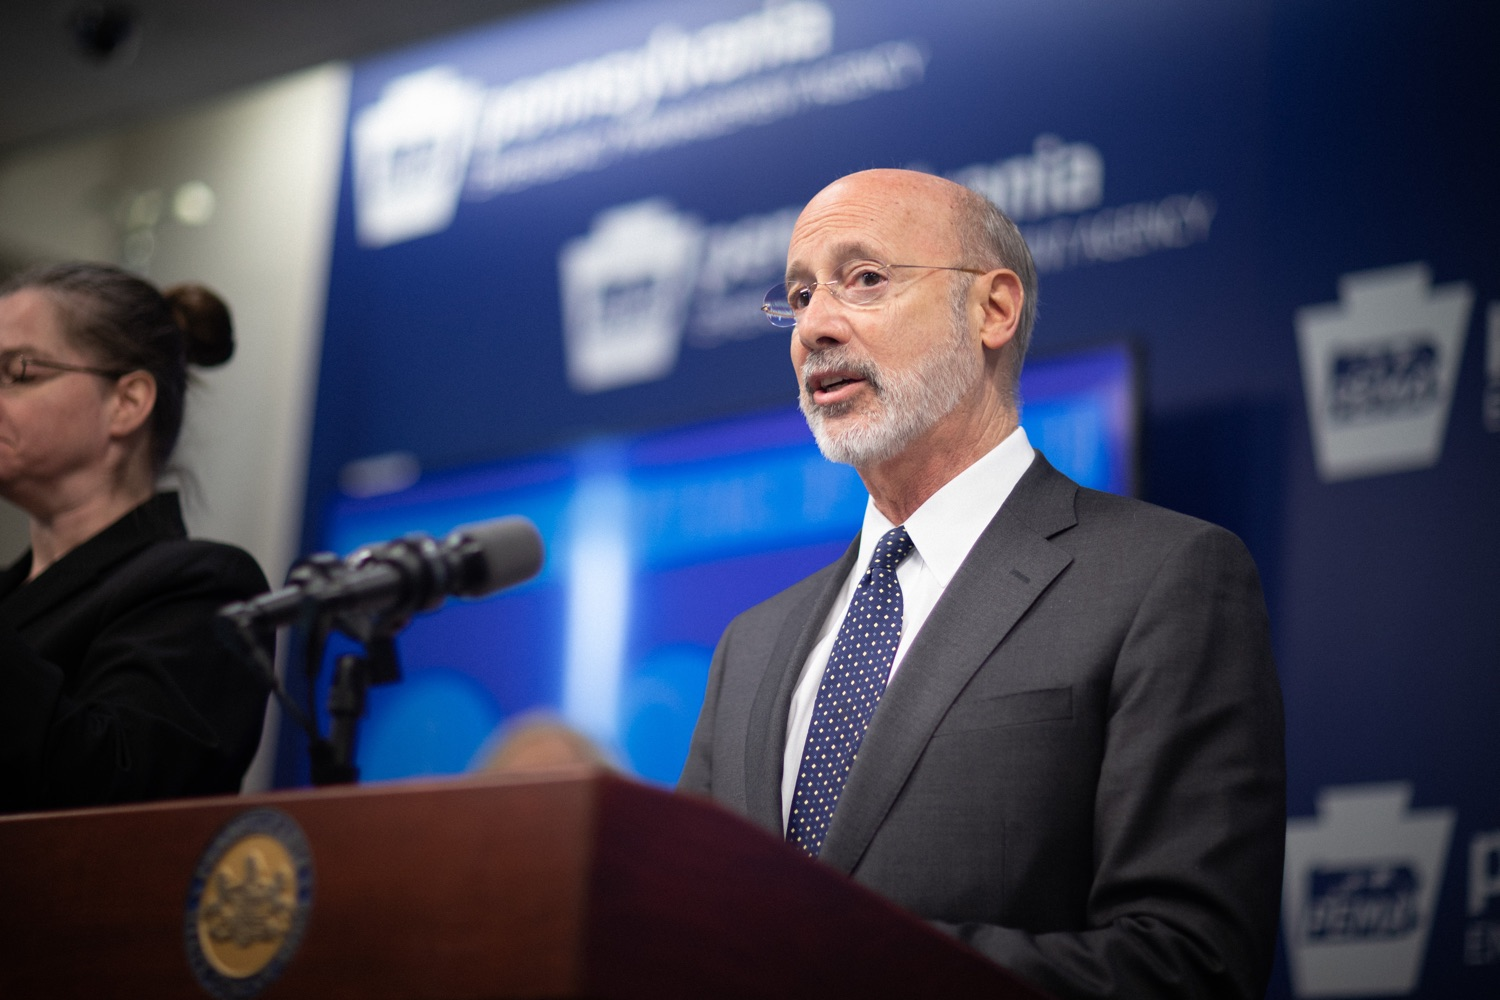 """<a href=""""https://filesource.wostreaming.net/commonwealthofpa/photo/17888_gov_covid19_update_dz_0005.jpg"""" target=""""_blank"""">⇣Download Photo<br></a>Governor Tom Wolf  speaking to reporters. Governor Tom Wolf and Secretary of Health Dr. Rachel Levine provided an update on the coronavirus known as COVID-19 and outline ongoing efforts to mitigate the virus in Pennsylvania. The Department of Health anticipates that there will be more Pennsylvanians who test positive for COVID-19 in the coming days and weeks and it is important for residents to know the commonwealth is prepared and to be prepared themselves. People have a higher chance of testing positive for COVID-19 if they have traveled to a country or state with known community outbreaks or have come in contact with someone who has the virus. The Wolf Administration is working with the health care community across Pennsylvania to keep them informed, consult on patient testing, and ensure they have the resources they need to care for patients. .March 16, 2020  Harrisburg Pa."""